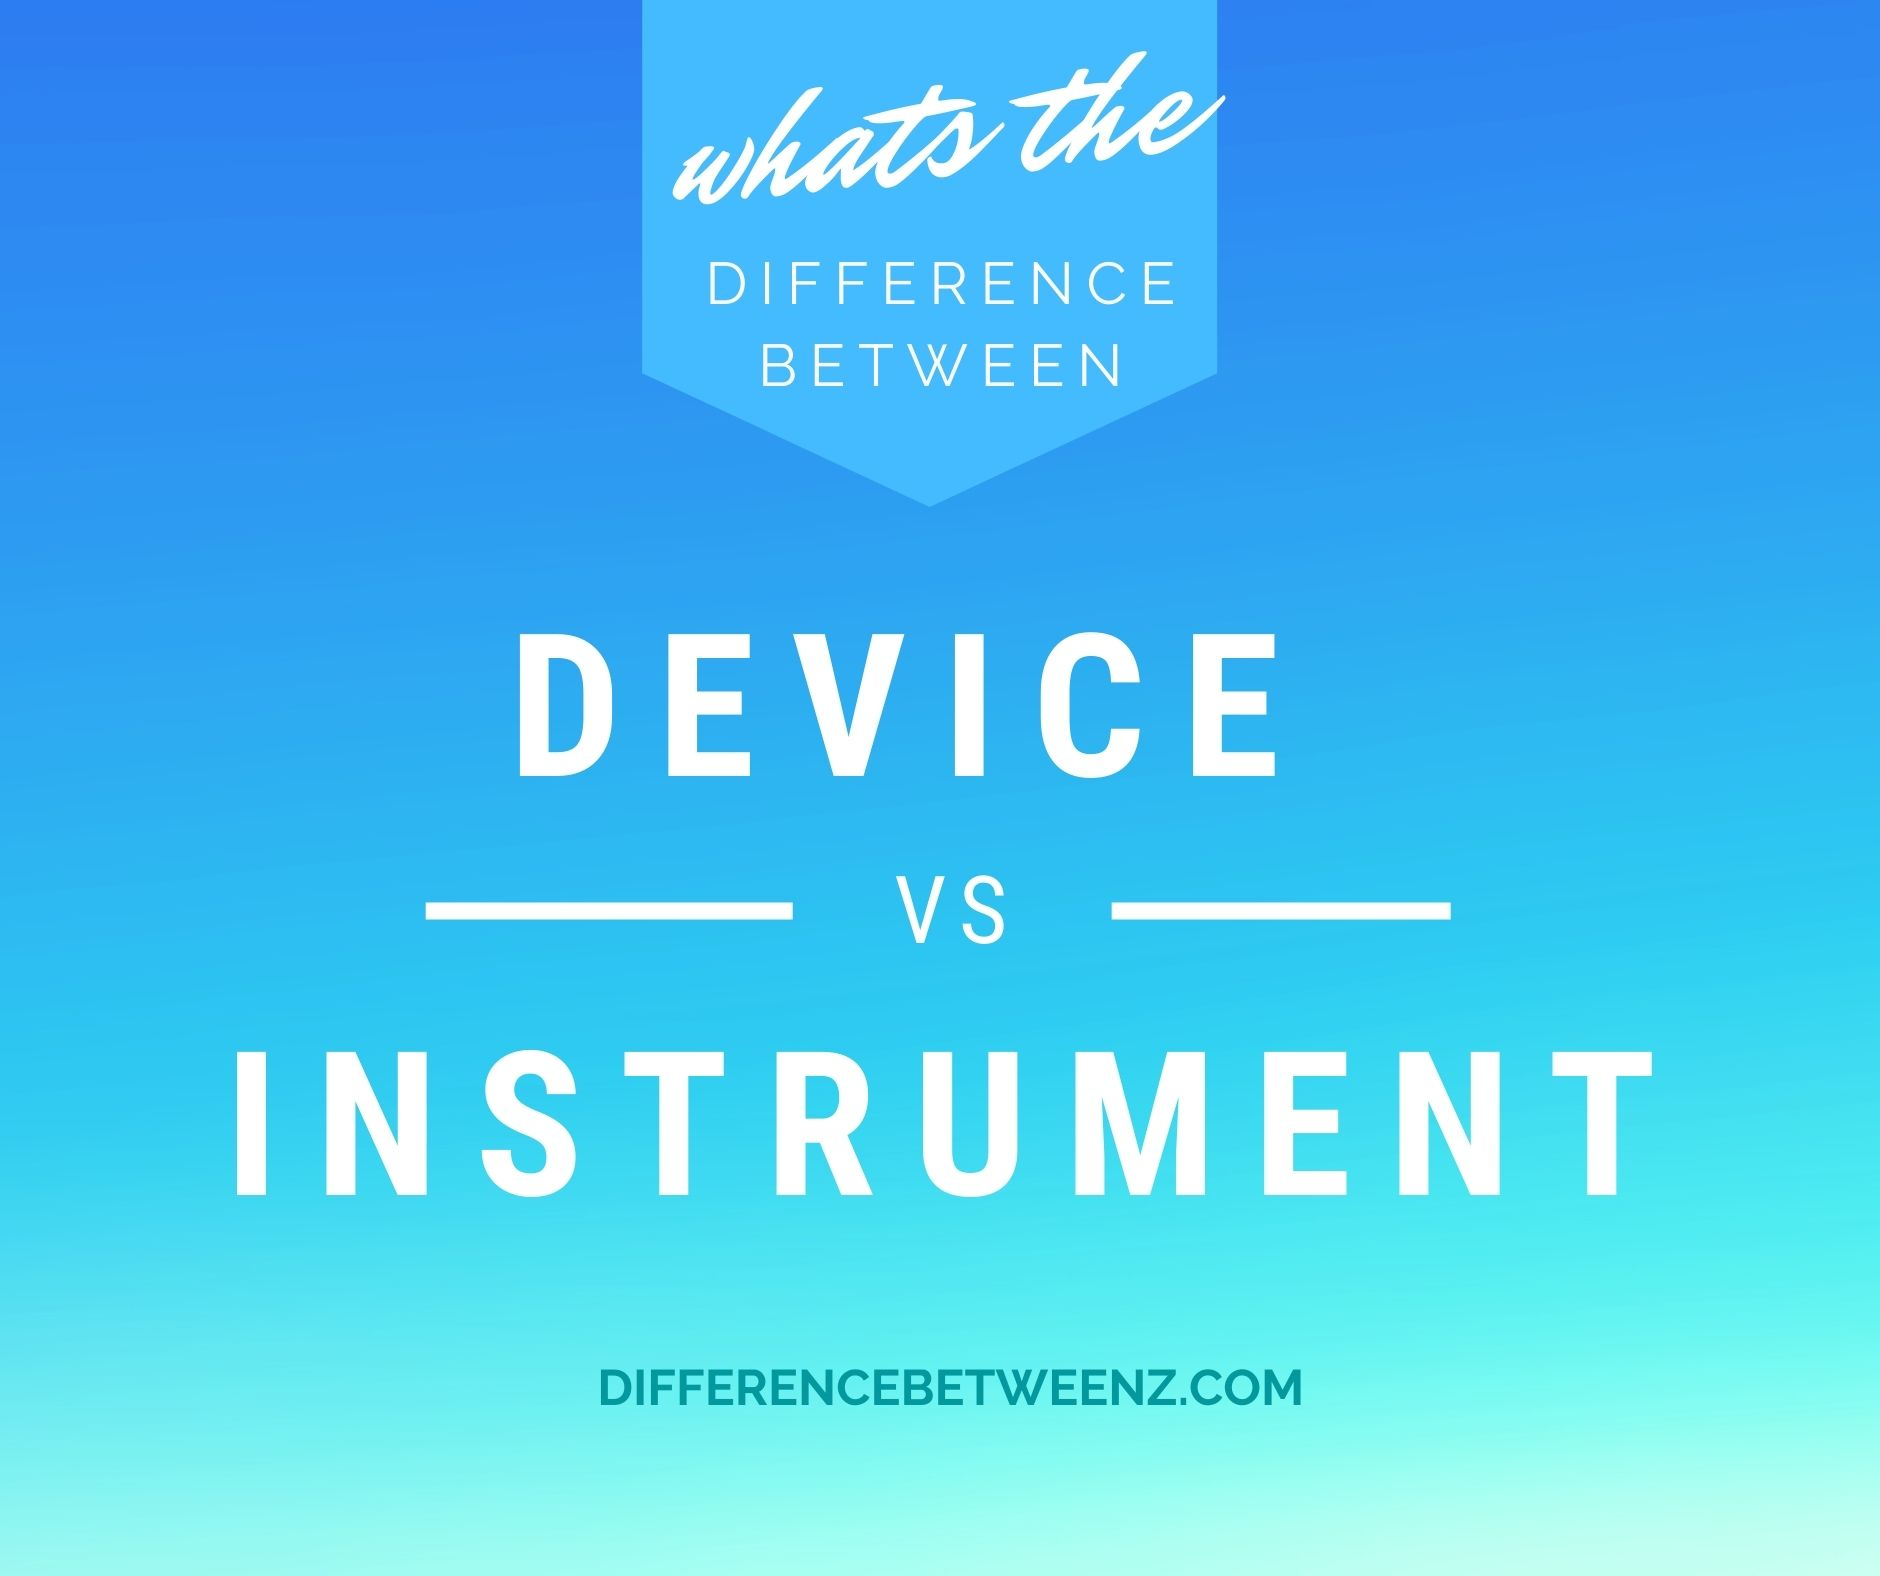 Difference between device and instrument